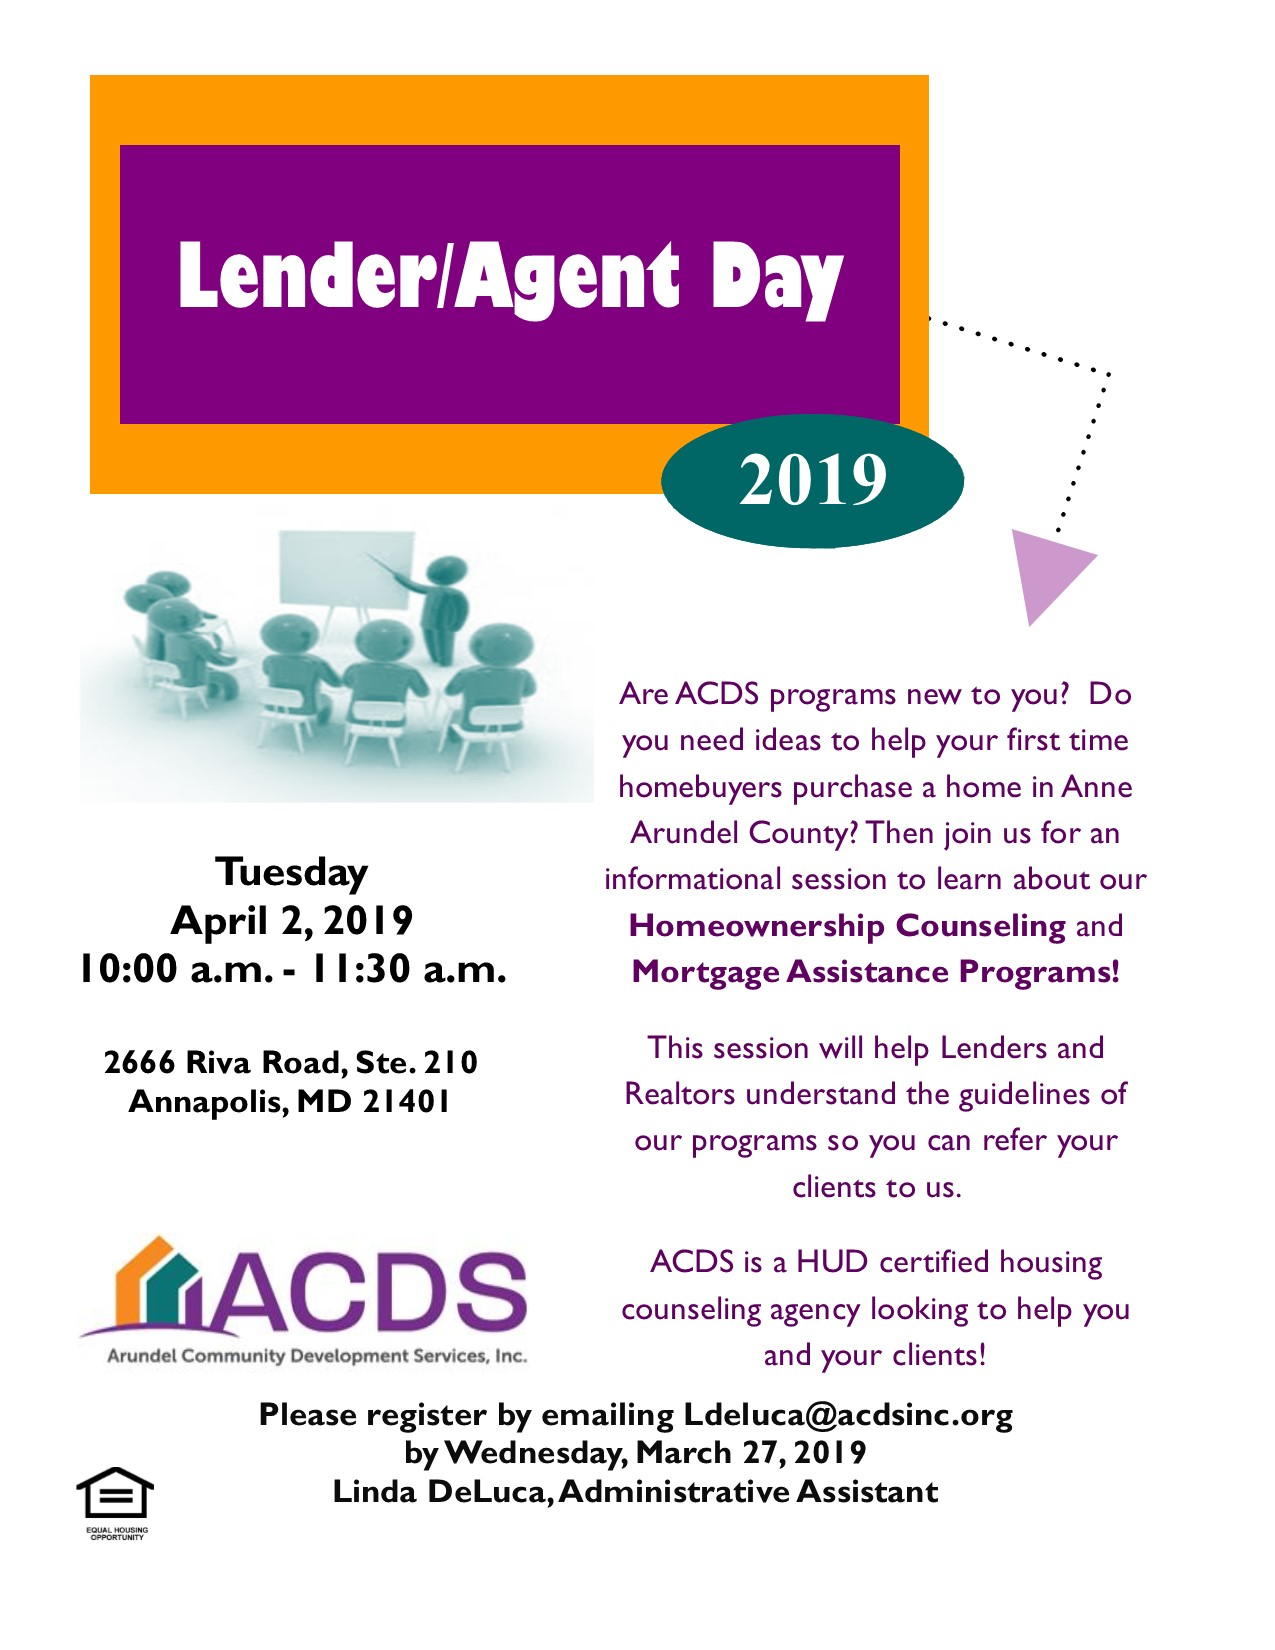 Lender Agent Day Arundel Community Development Services Inc